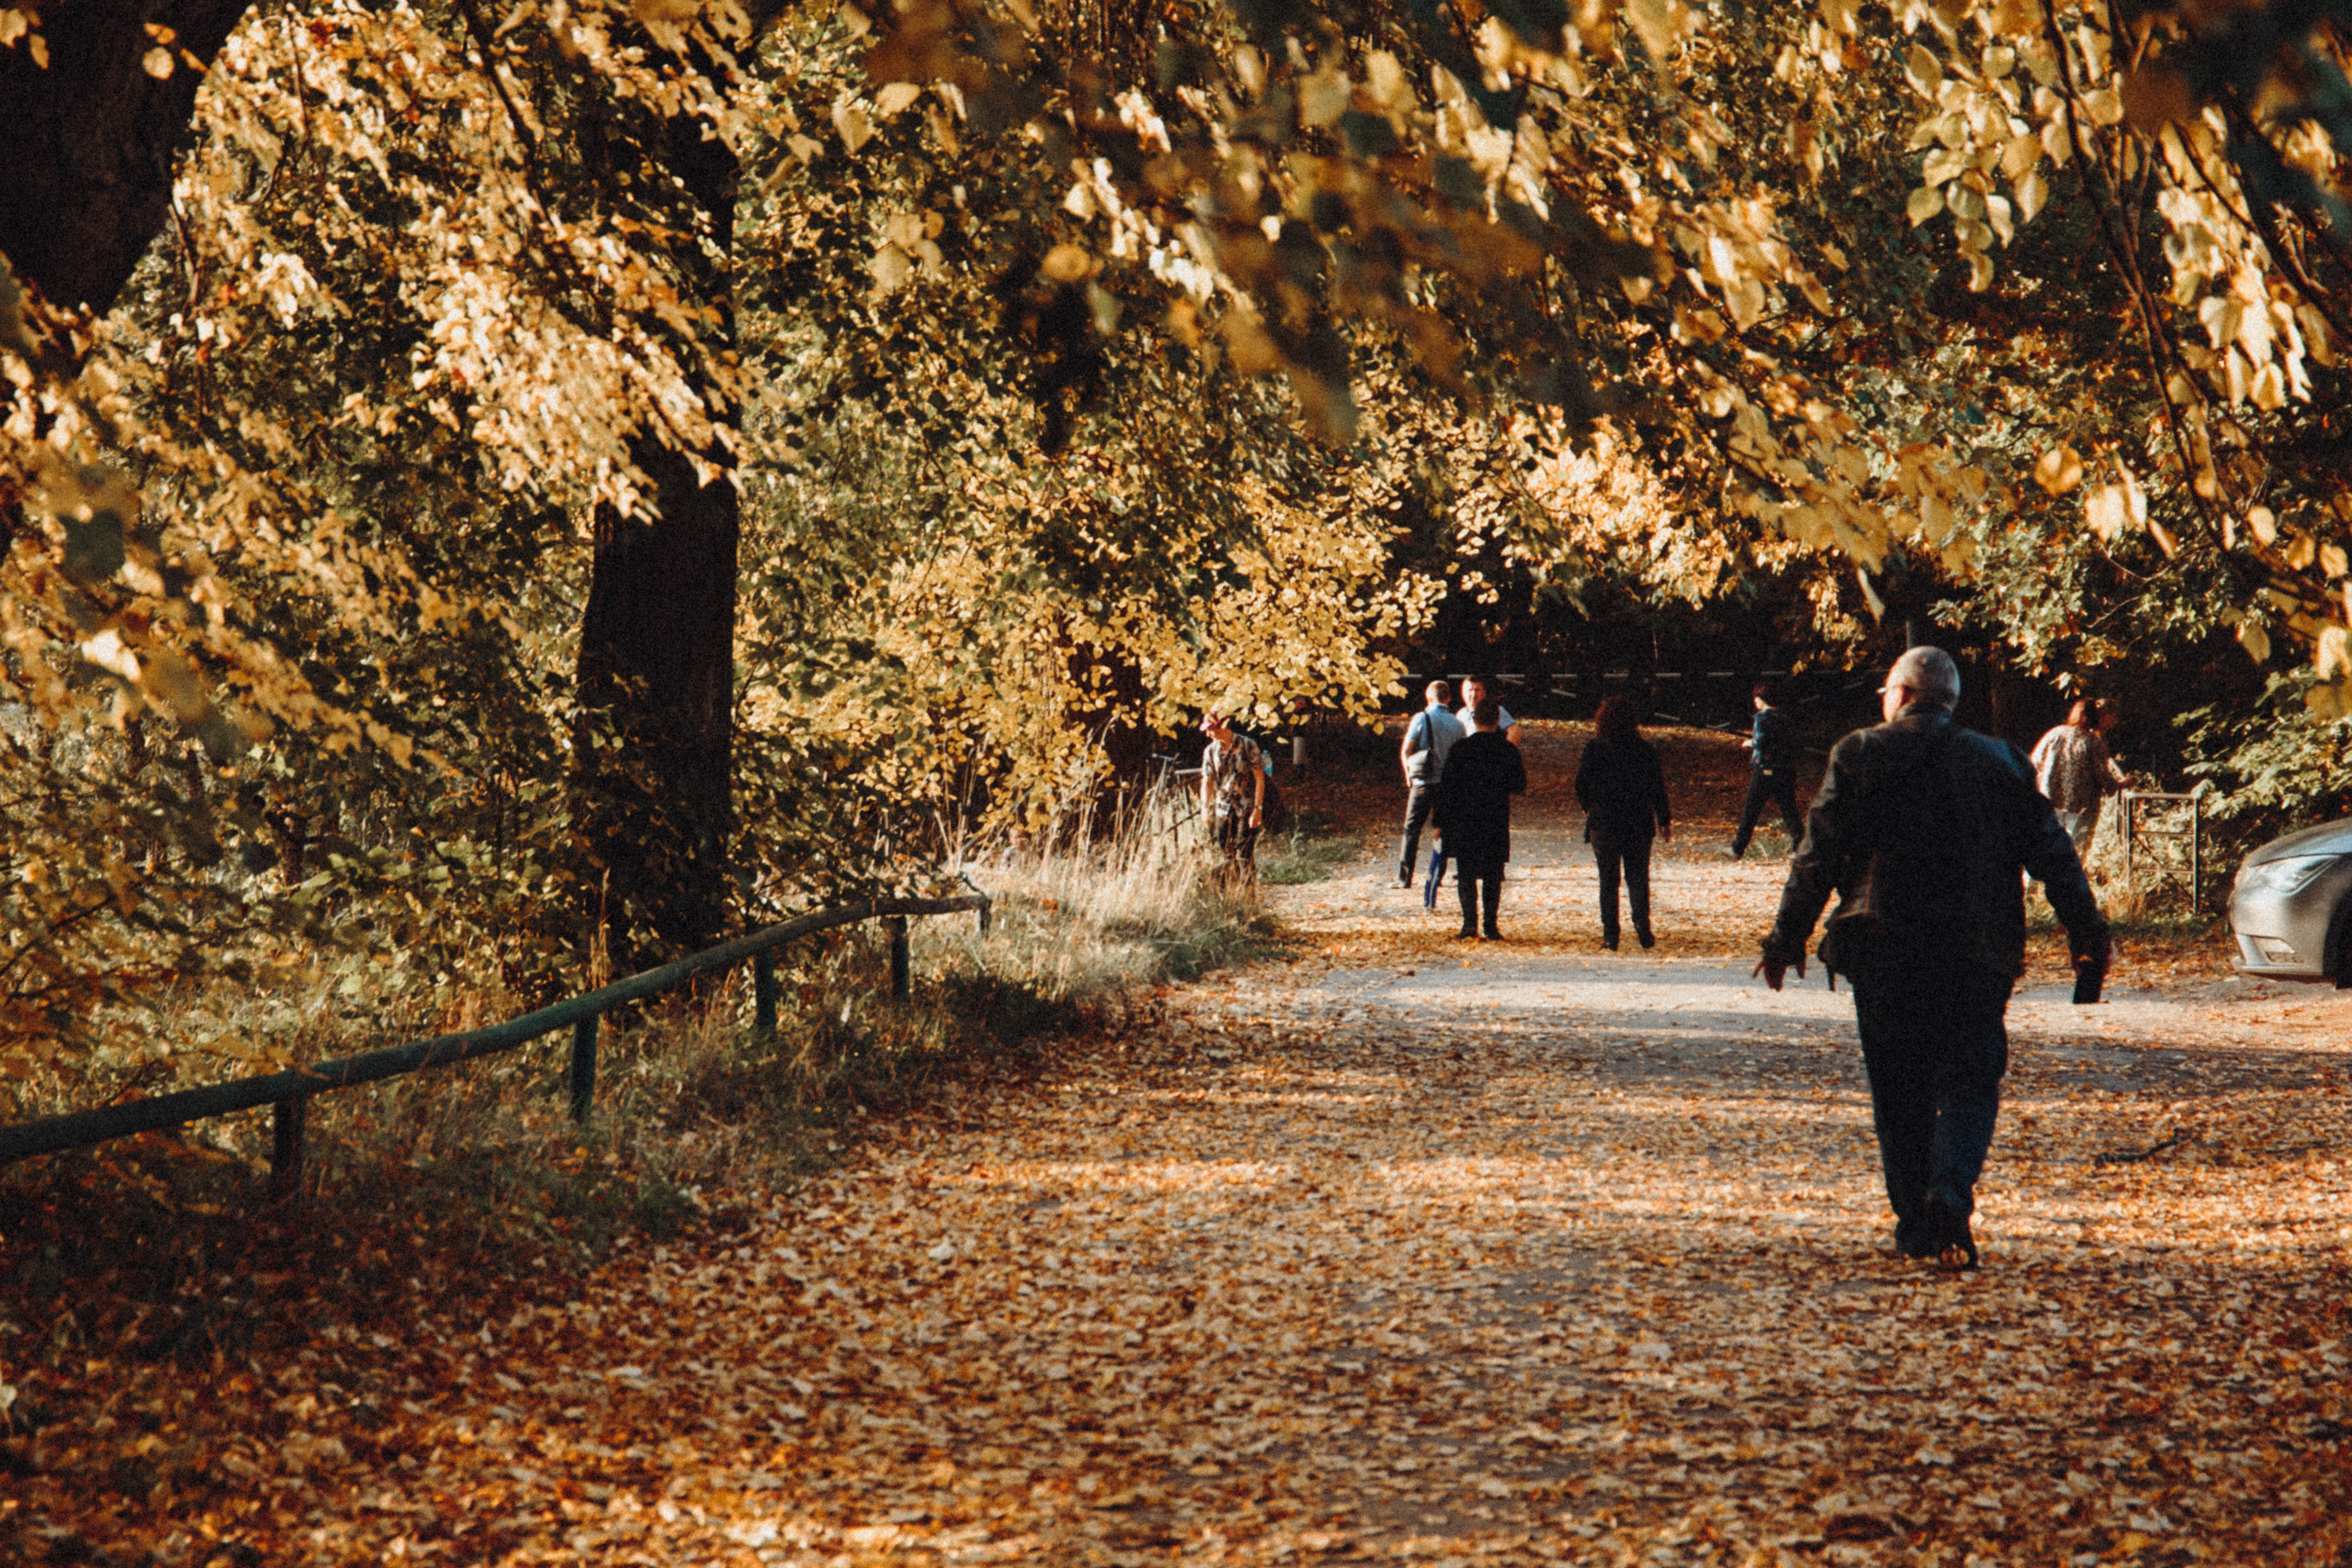 7 Ways to Prevent Unsafe Wandering